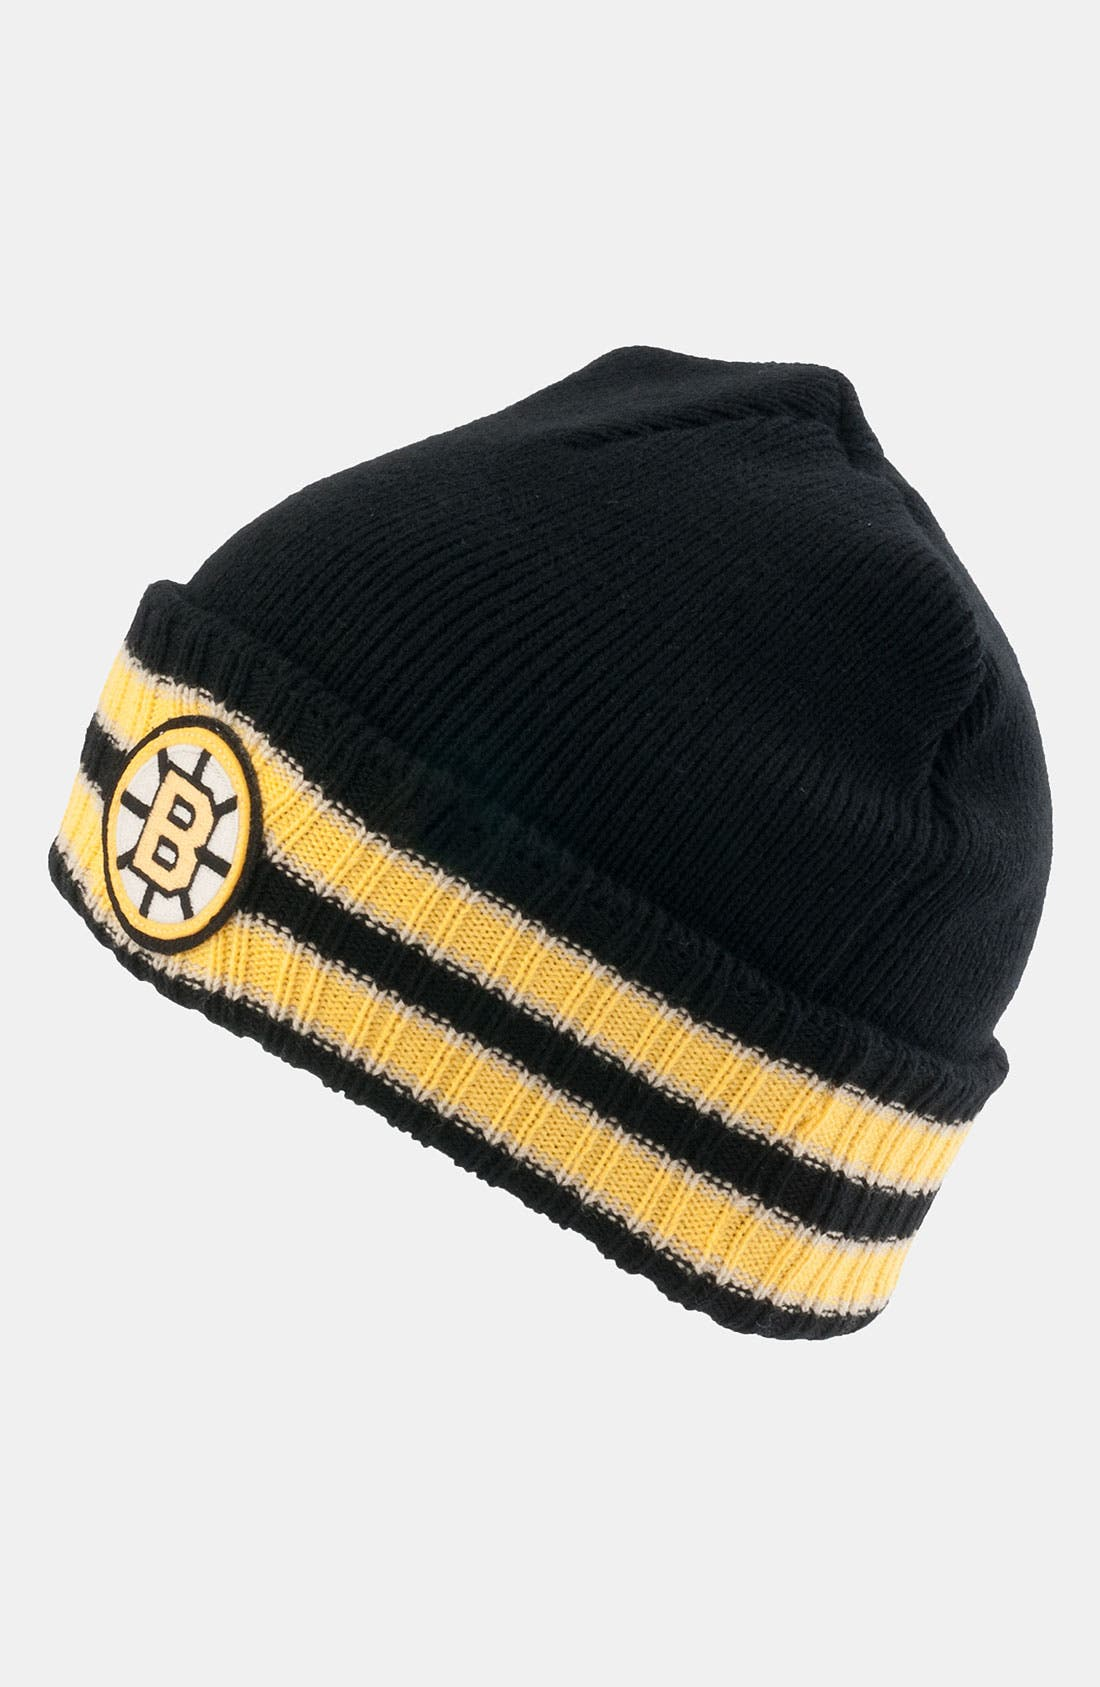 Main Image - American Needle 'Boston Bruins - Slash' Knit Hat